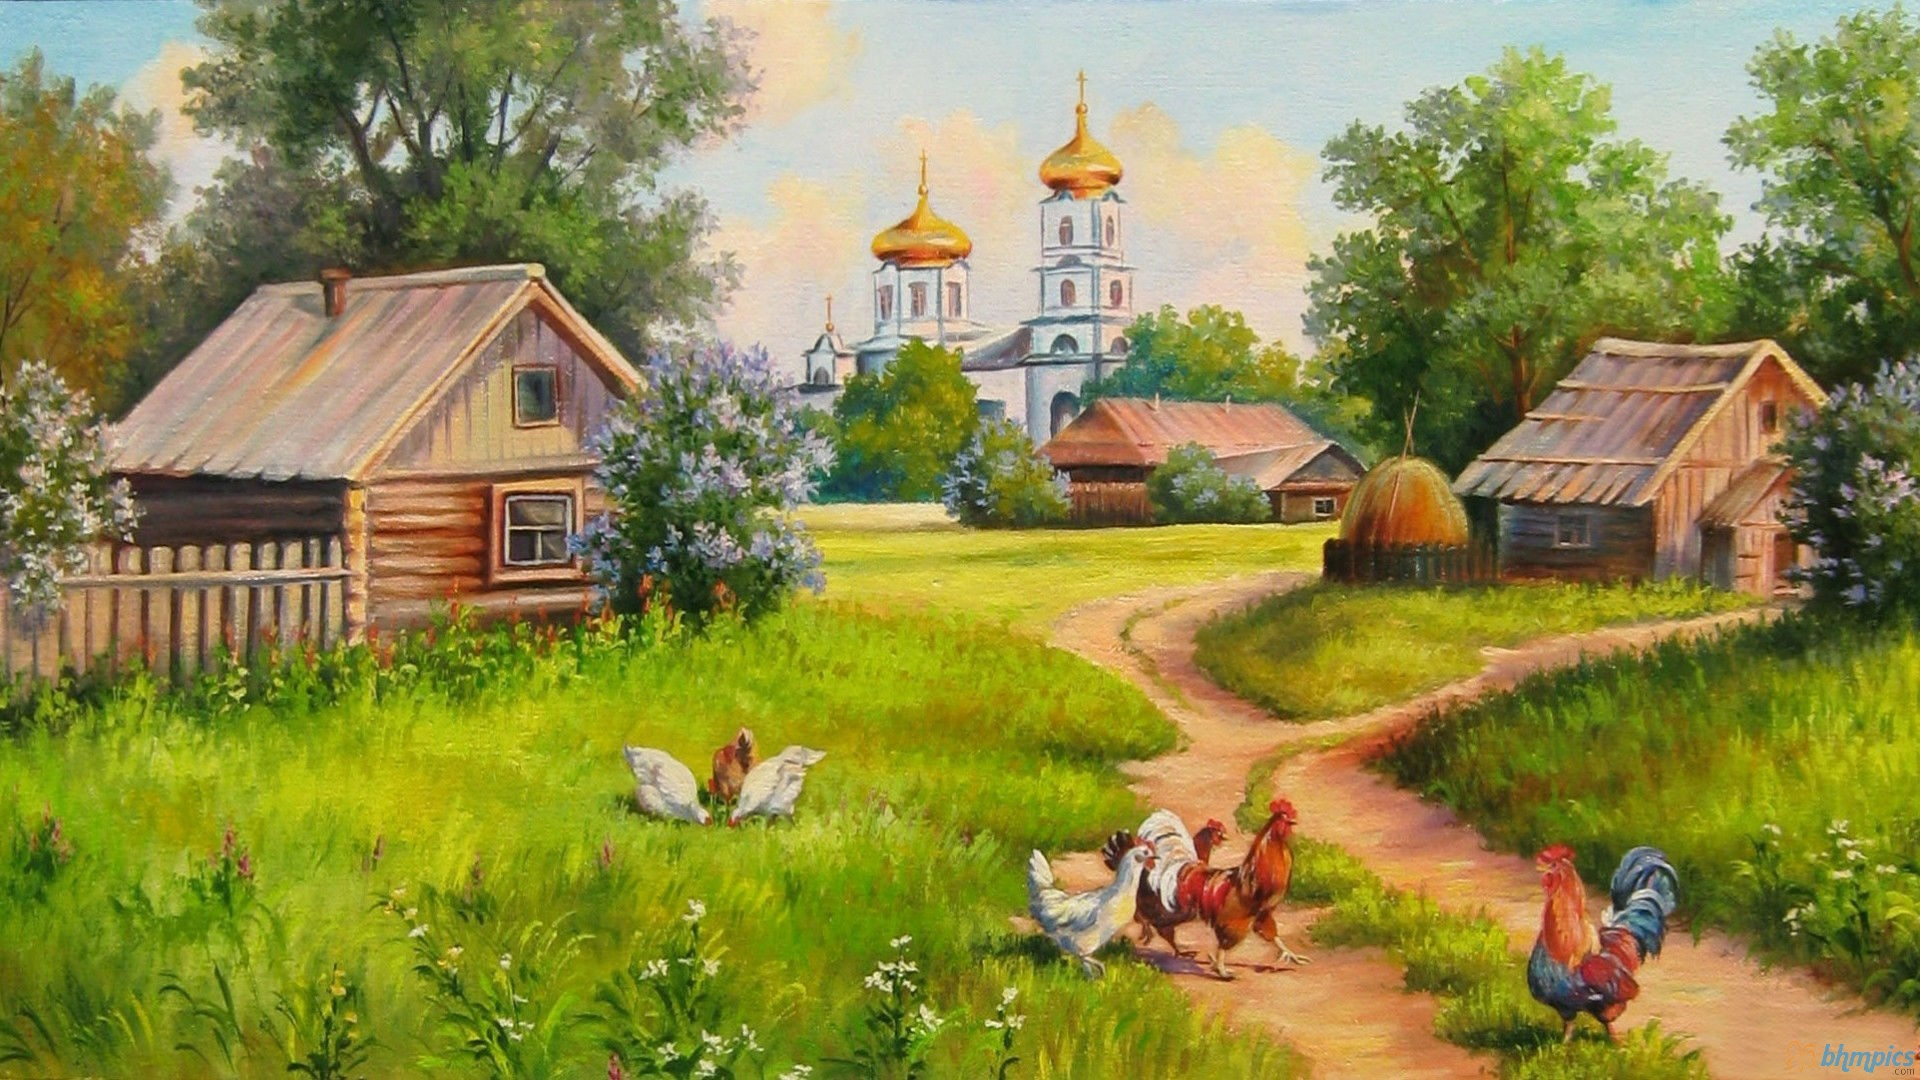 Village computer wallpapers desktop backgrounds for Wallpaper home animation